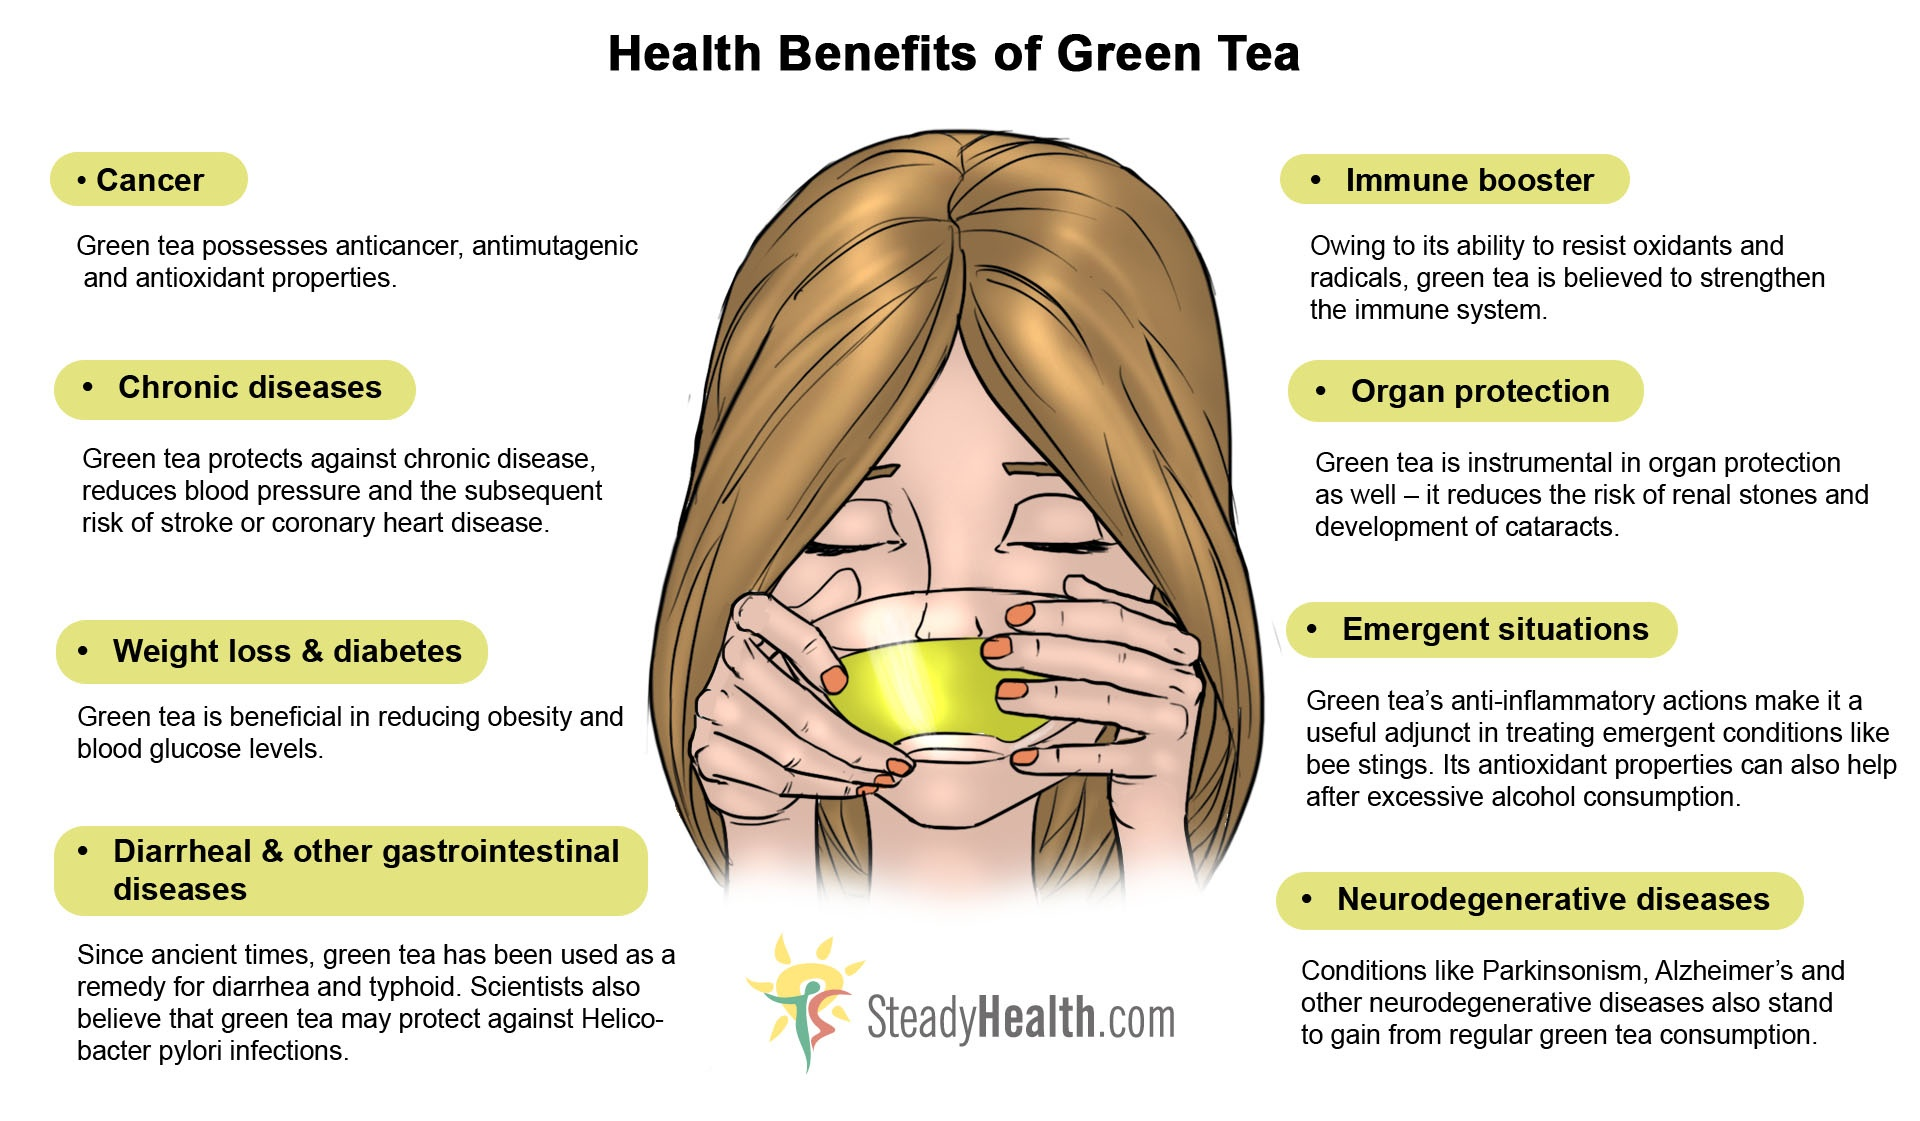 is it okay for an underweight person to drink green tea? - quora